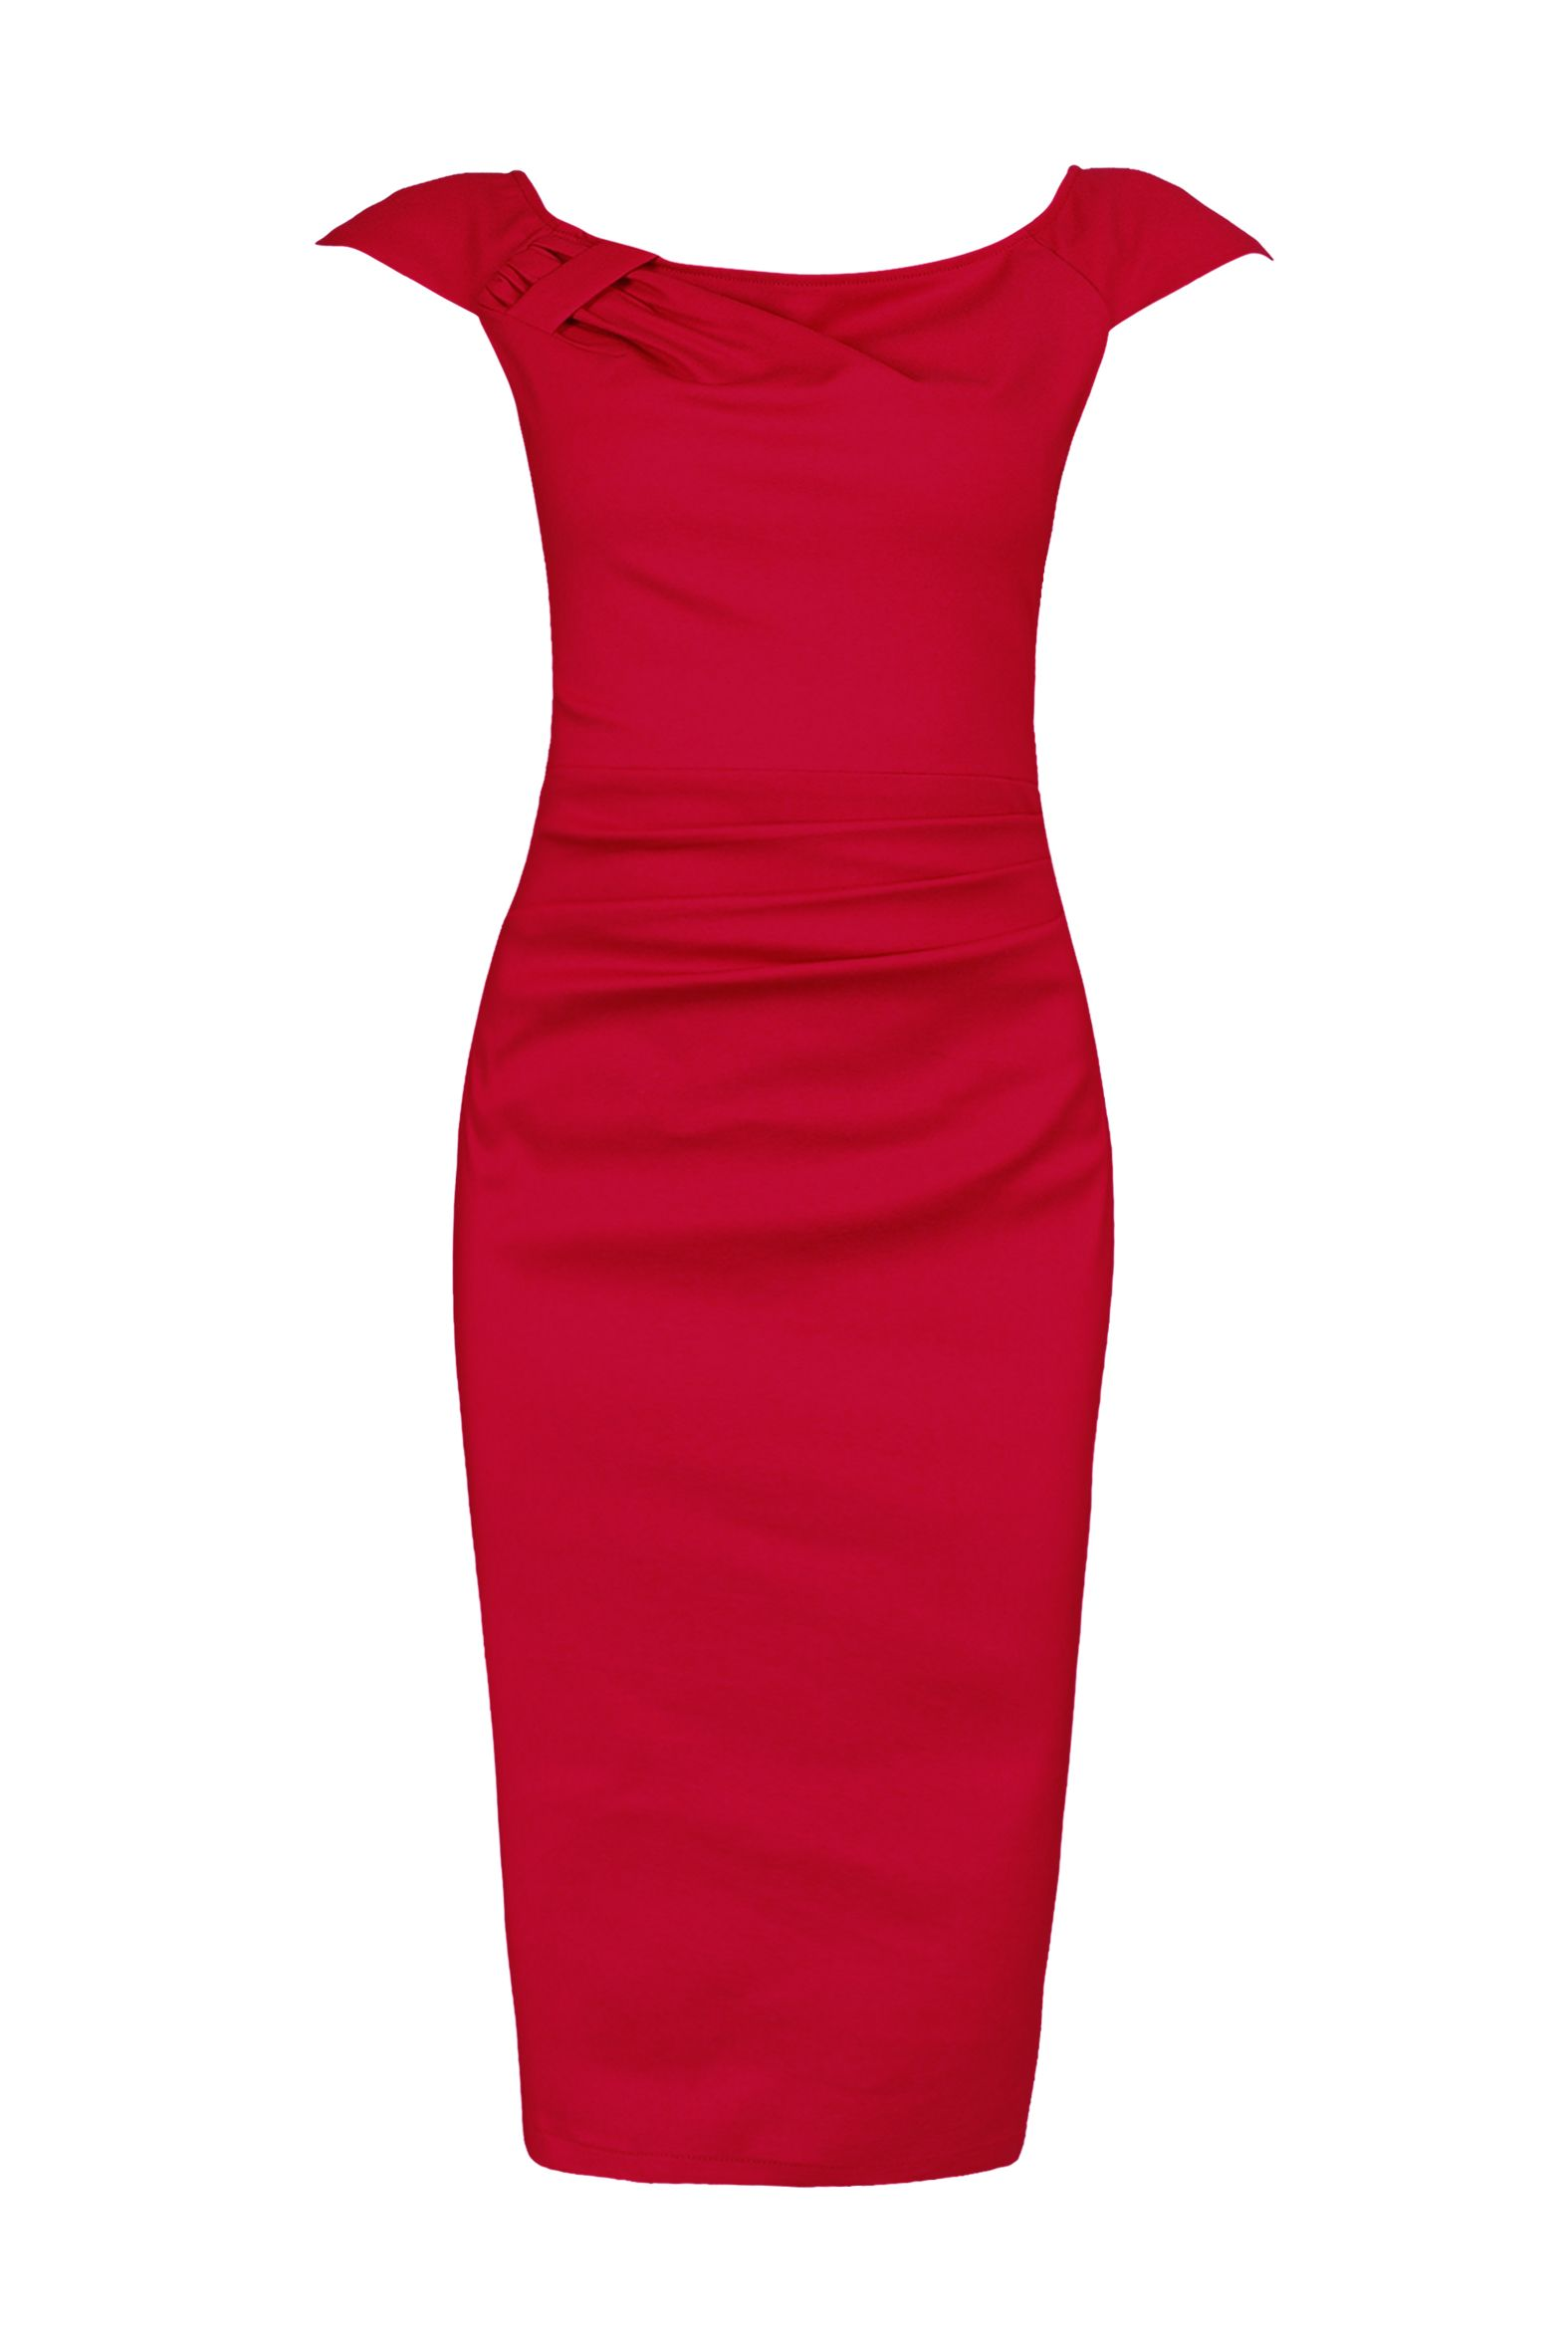 Jolie Moi Ruched 40s Wiggle Dress, Red